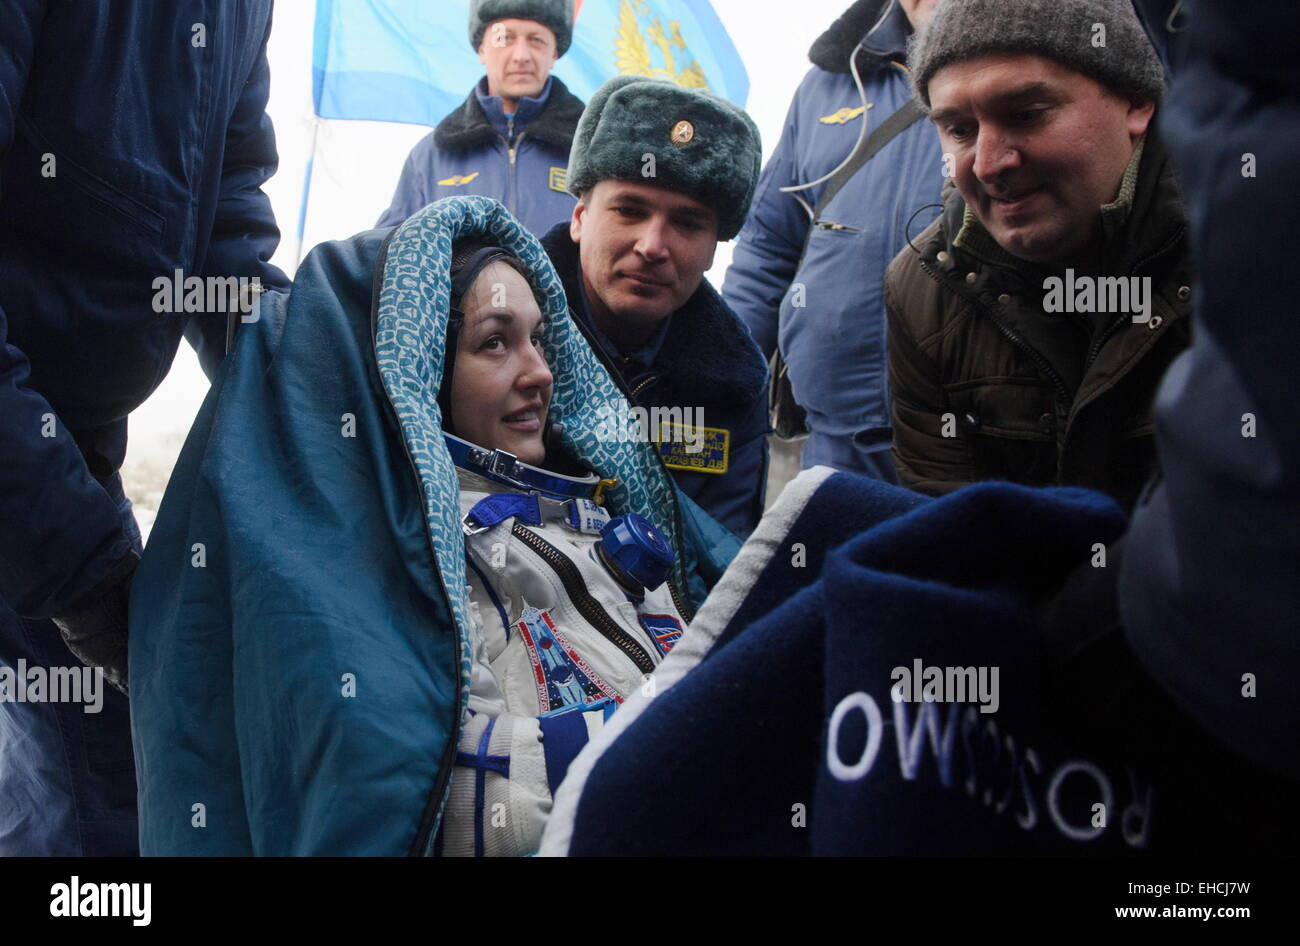 Kazakhstan. 12th March, 2015. ISS Expedition 41/42 crew member, Russia's cosmonaut Yelena Serova (L) seen after - Stock Image